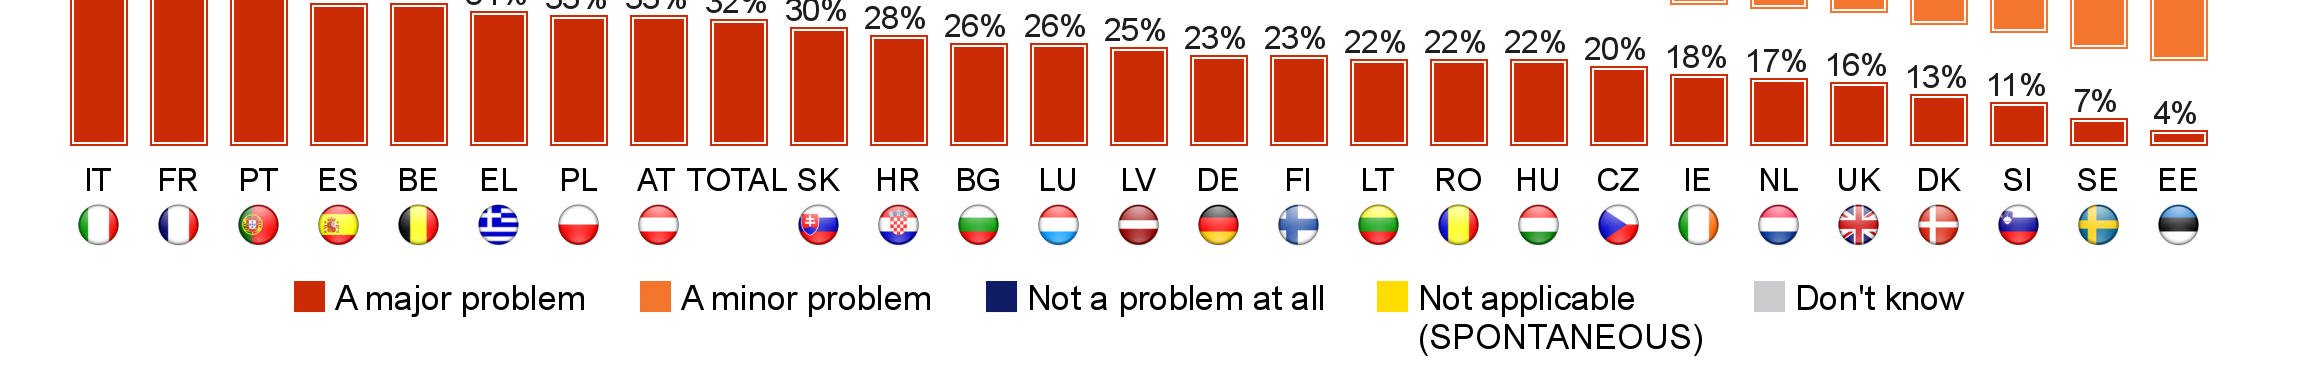 FLASH EUROBAROMETER Estonia (52), Finland and Denmark (both 50) are the only countries where at least half say this issue would not be a problem at all.